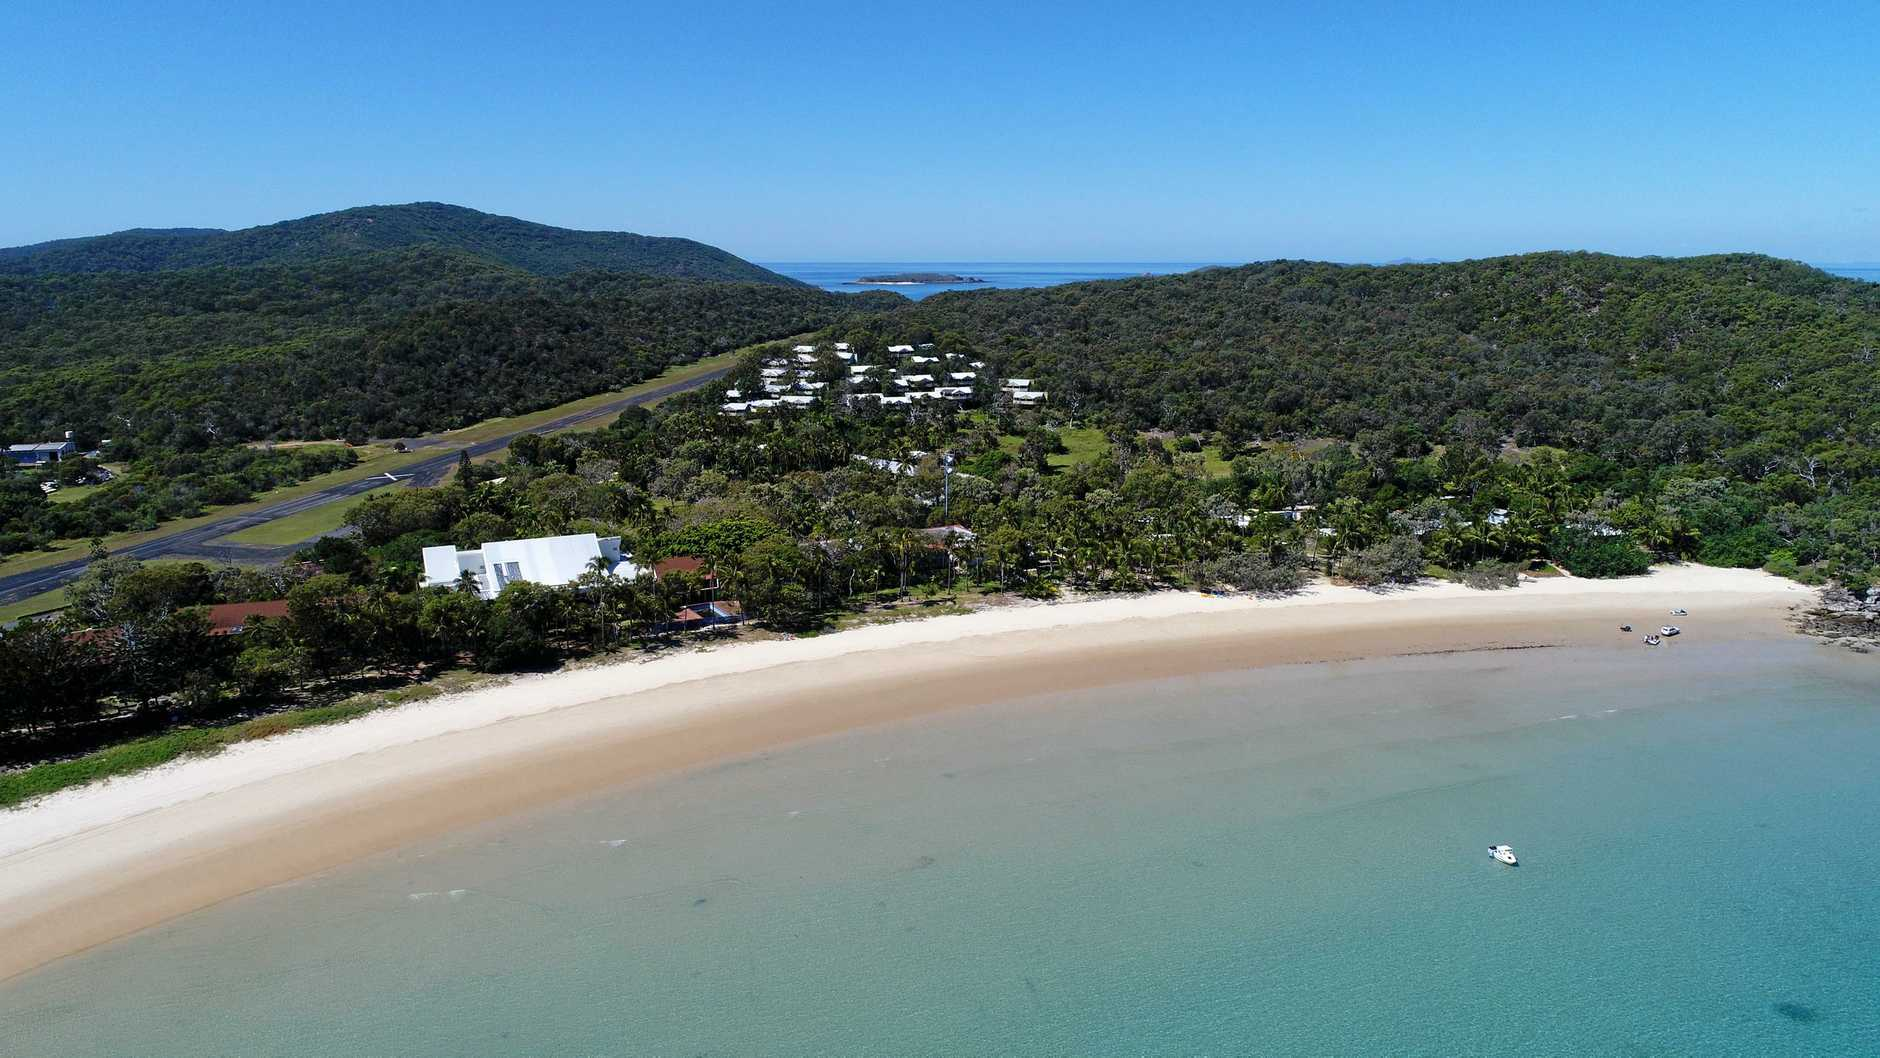 PICTURESQUE: GKI: 'The jewel of the Great Barrier Reef'.